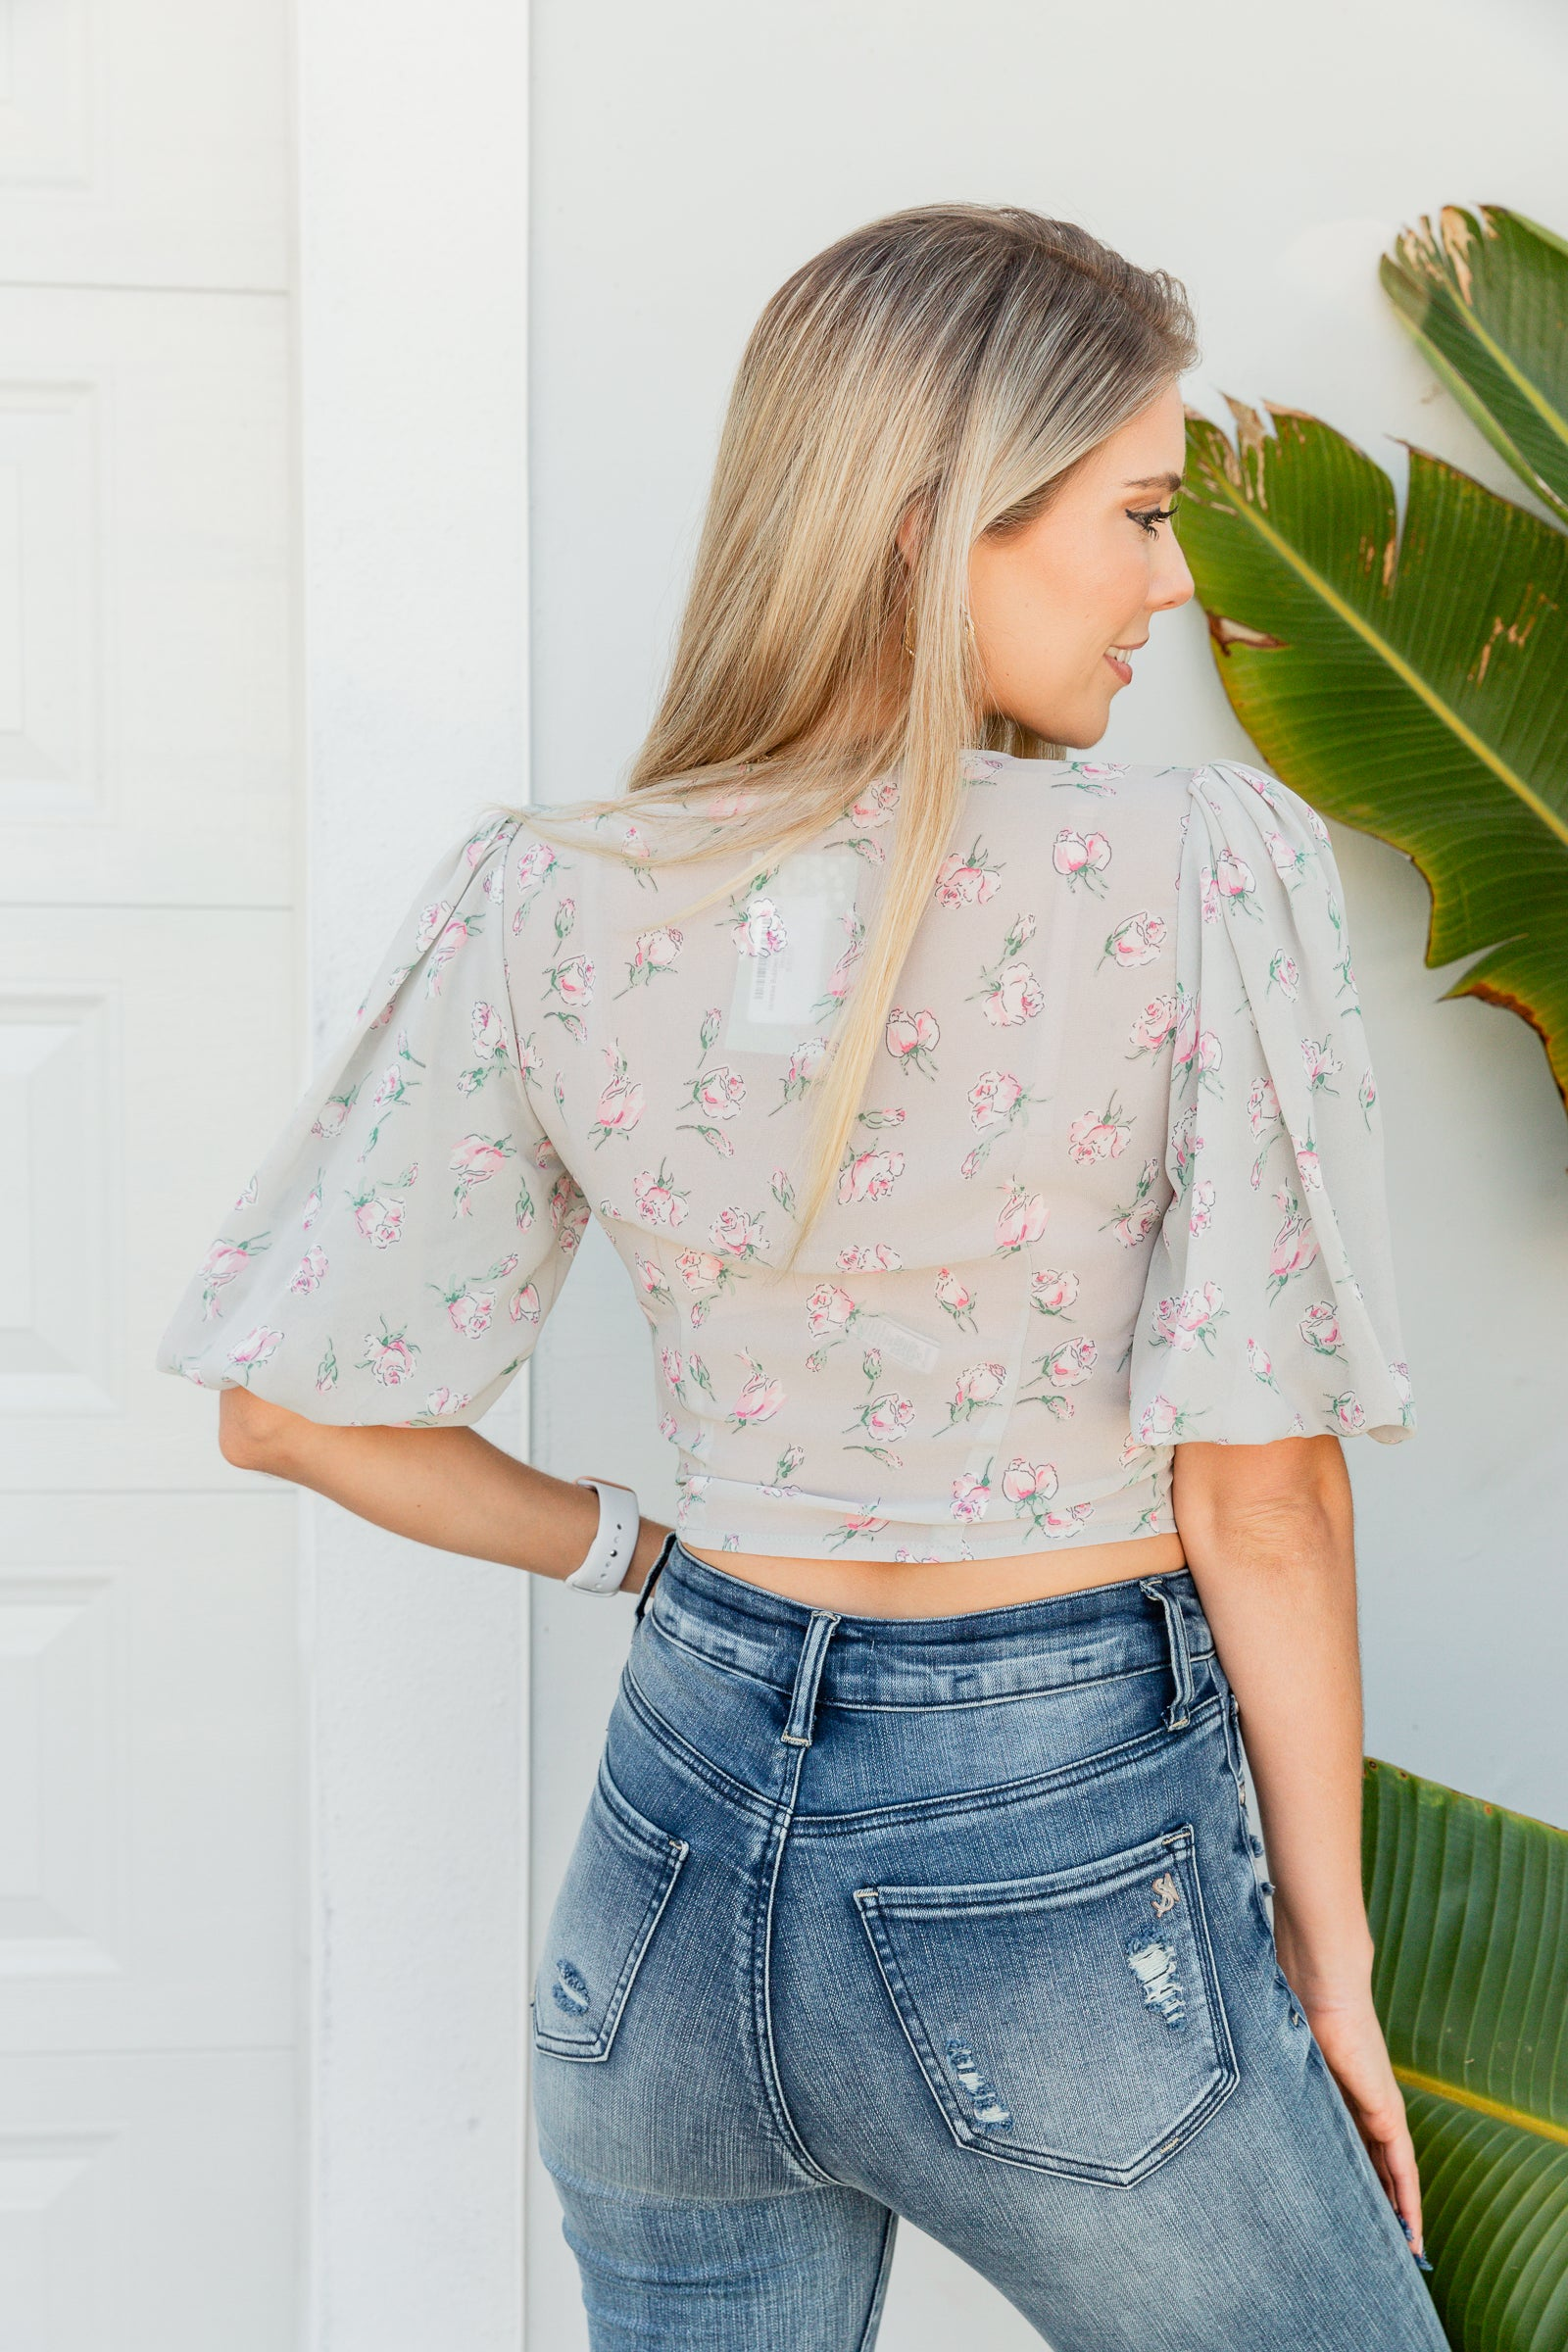 Small floral prints cover the fabric of this lightweight top. Mid-length bubble puffed sleeves attach to a v-neckline on a button-down bodice on a cropped and tie-front hem.